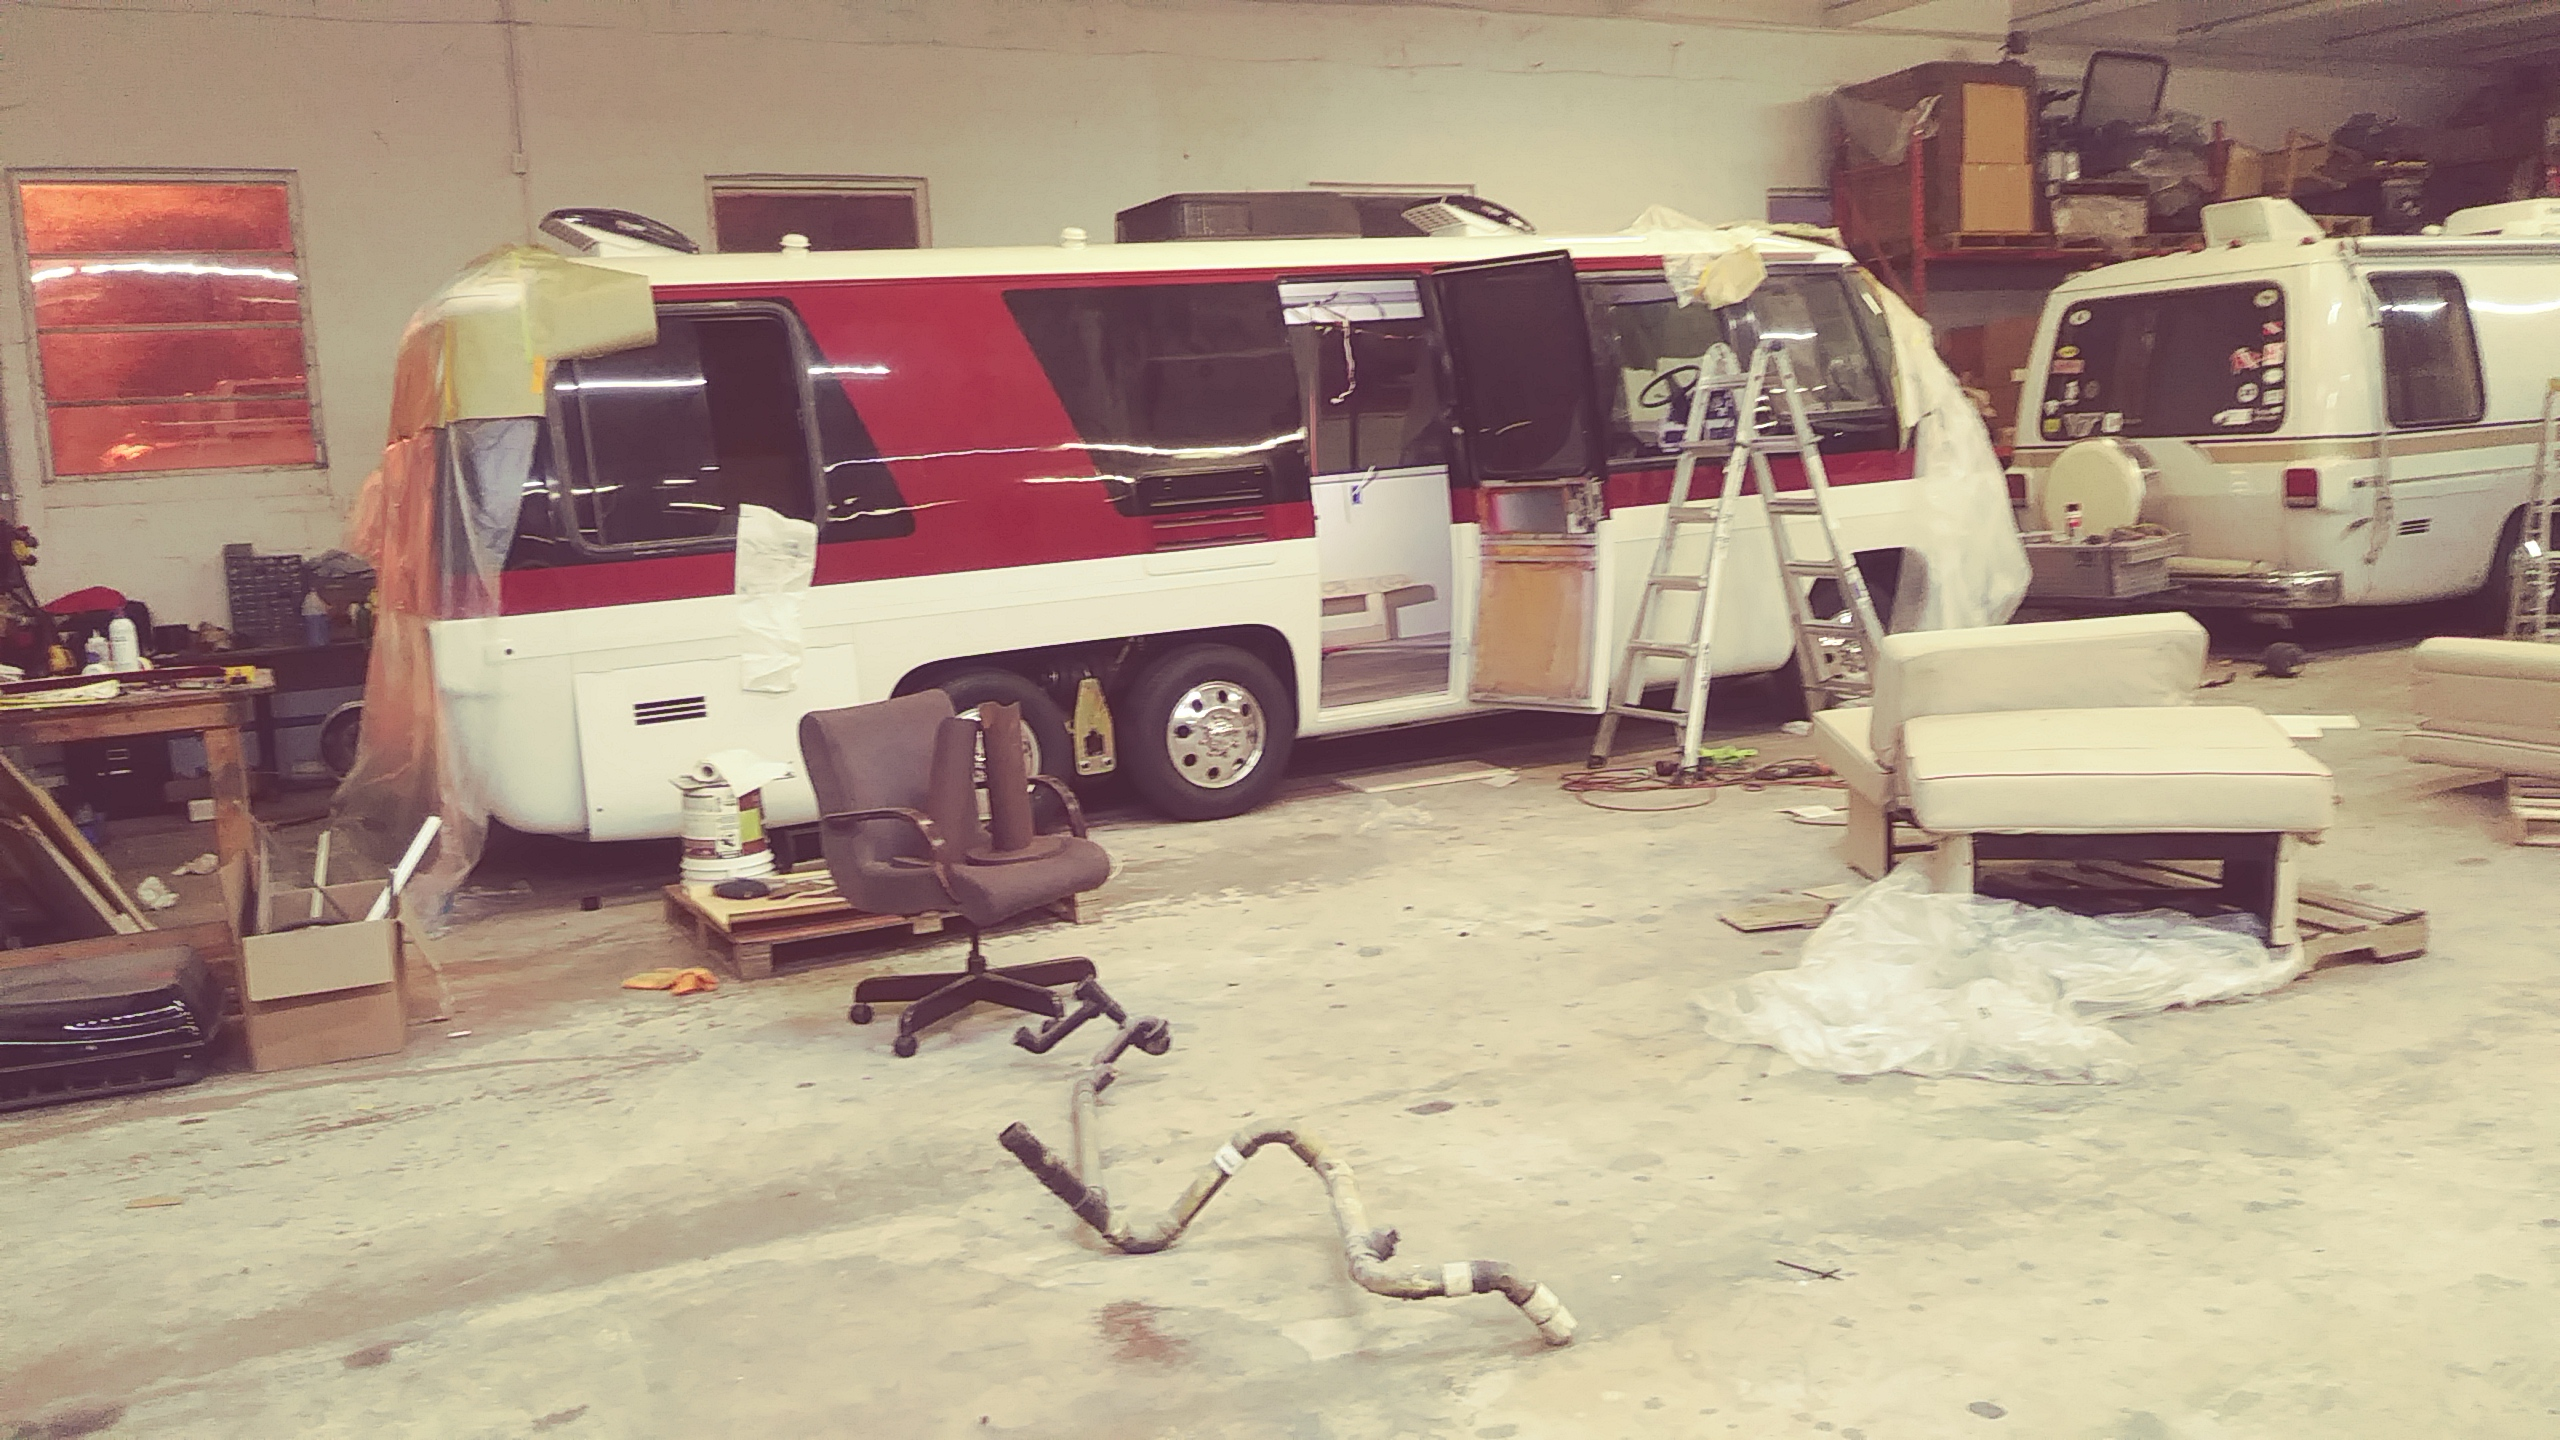 GMC motorhome: Converting the early beltline molding to new